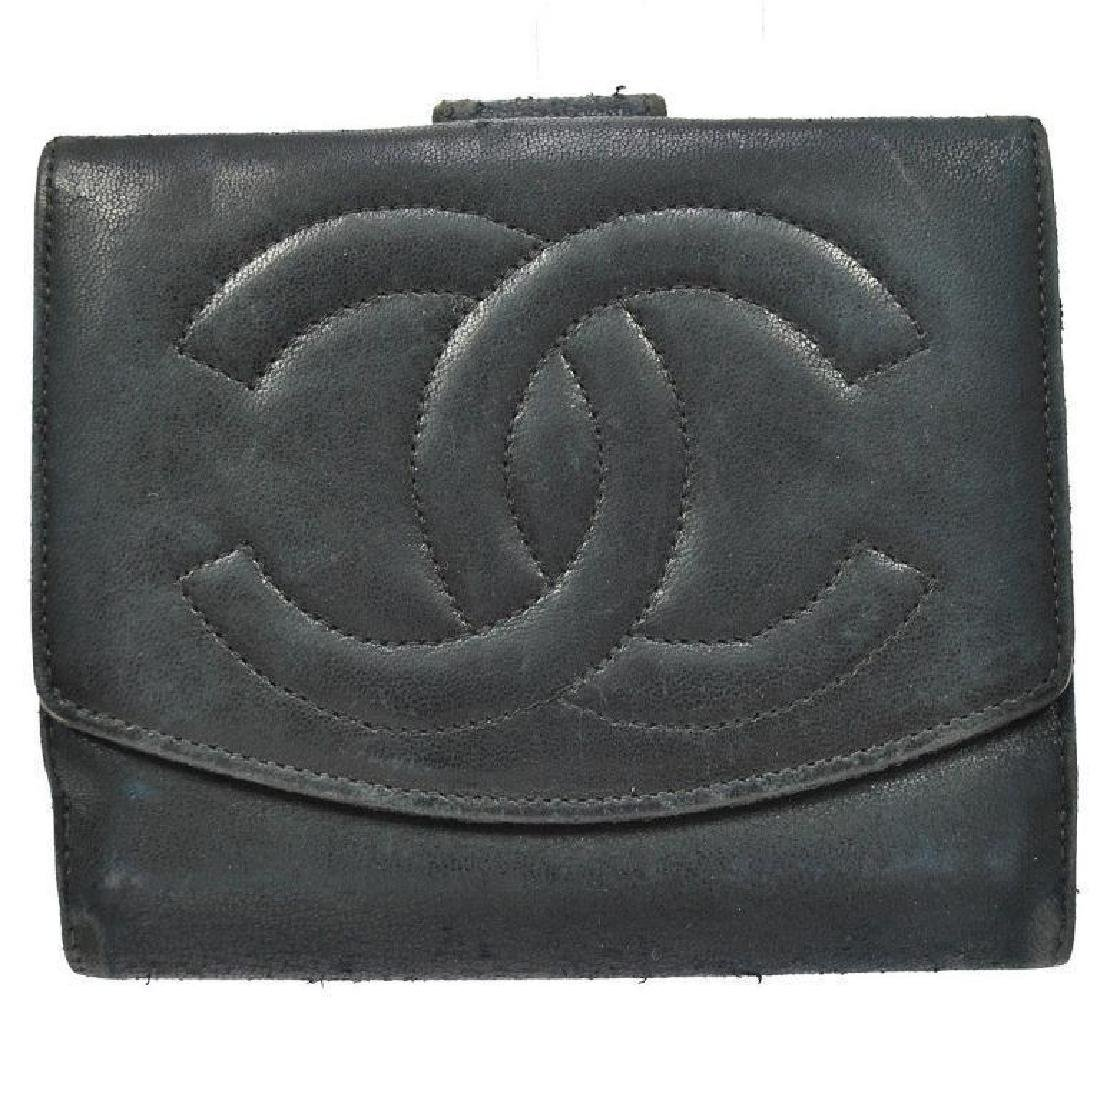 Authentic Vintage CHANEL Leather Wallet